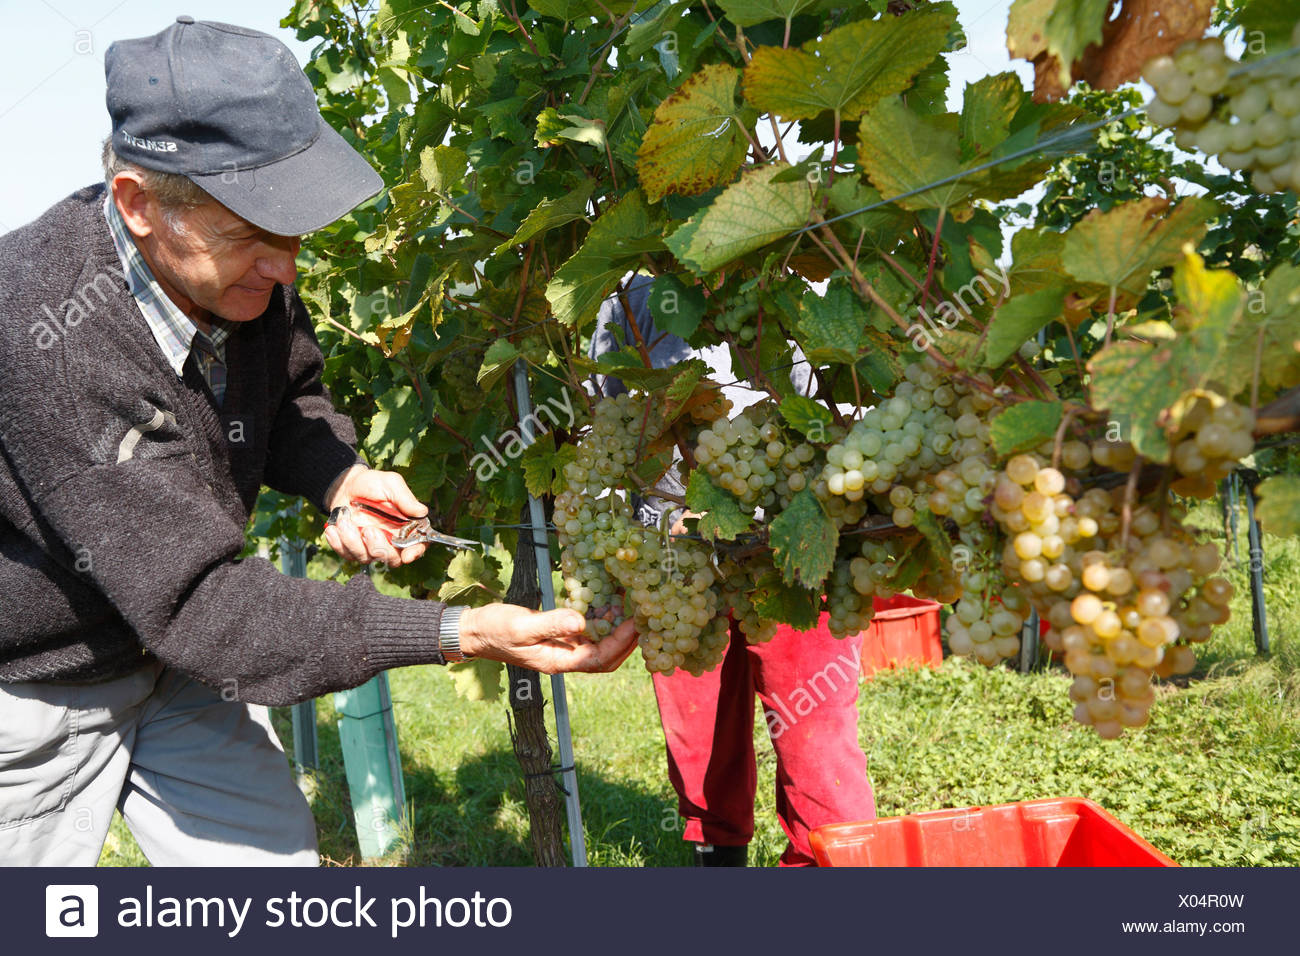 Man harvesting grapes in Langegg, Southern Styria, Austria, Europe - Stock Image